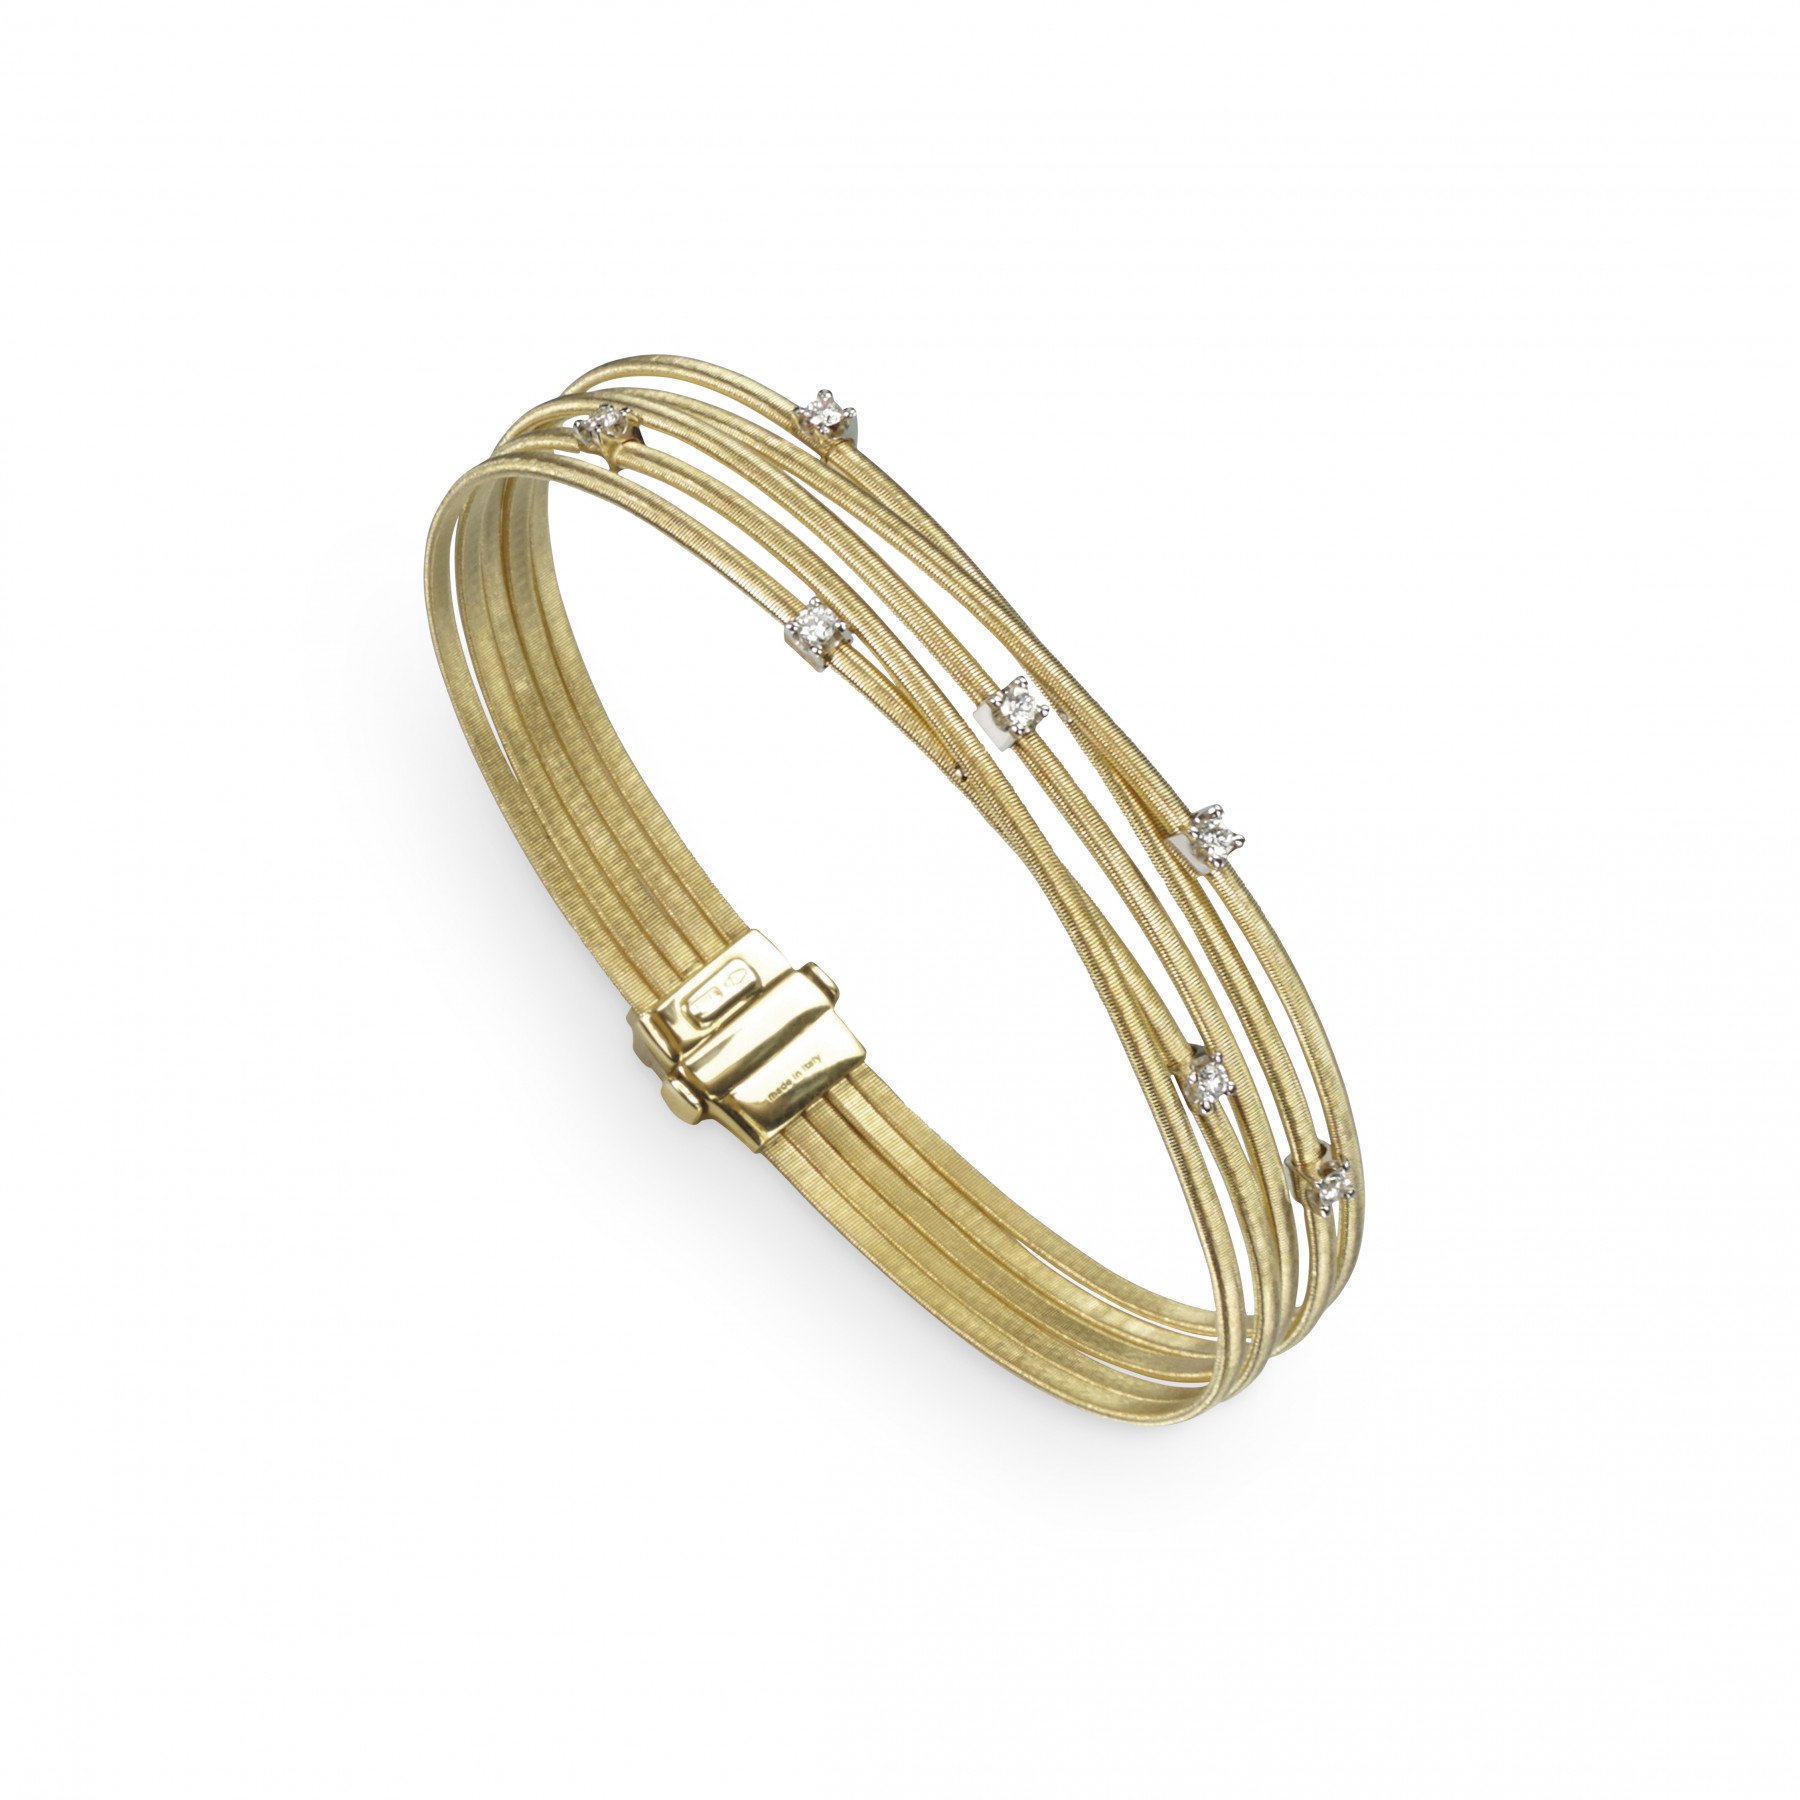 Marco Bicego Goa 18kt Yellow Gold 5-Wire Bracelet